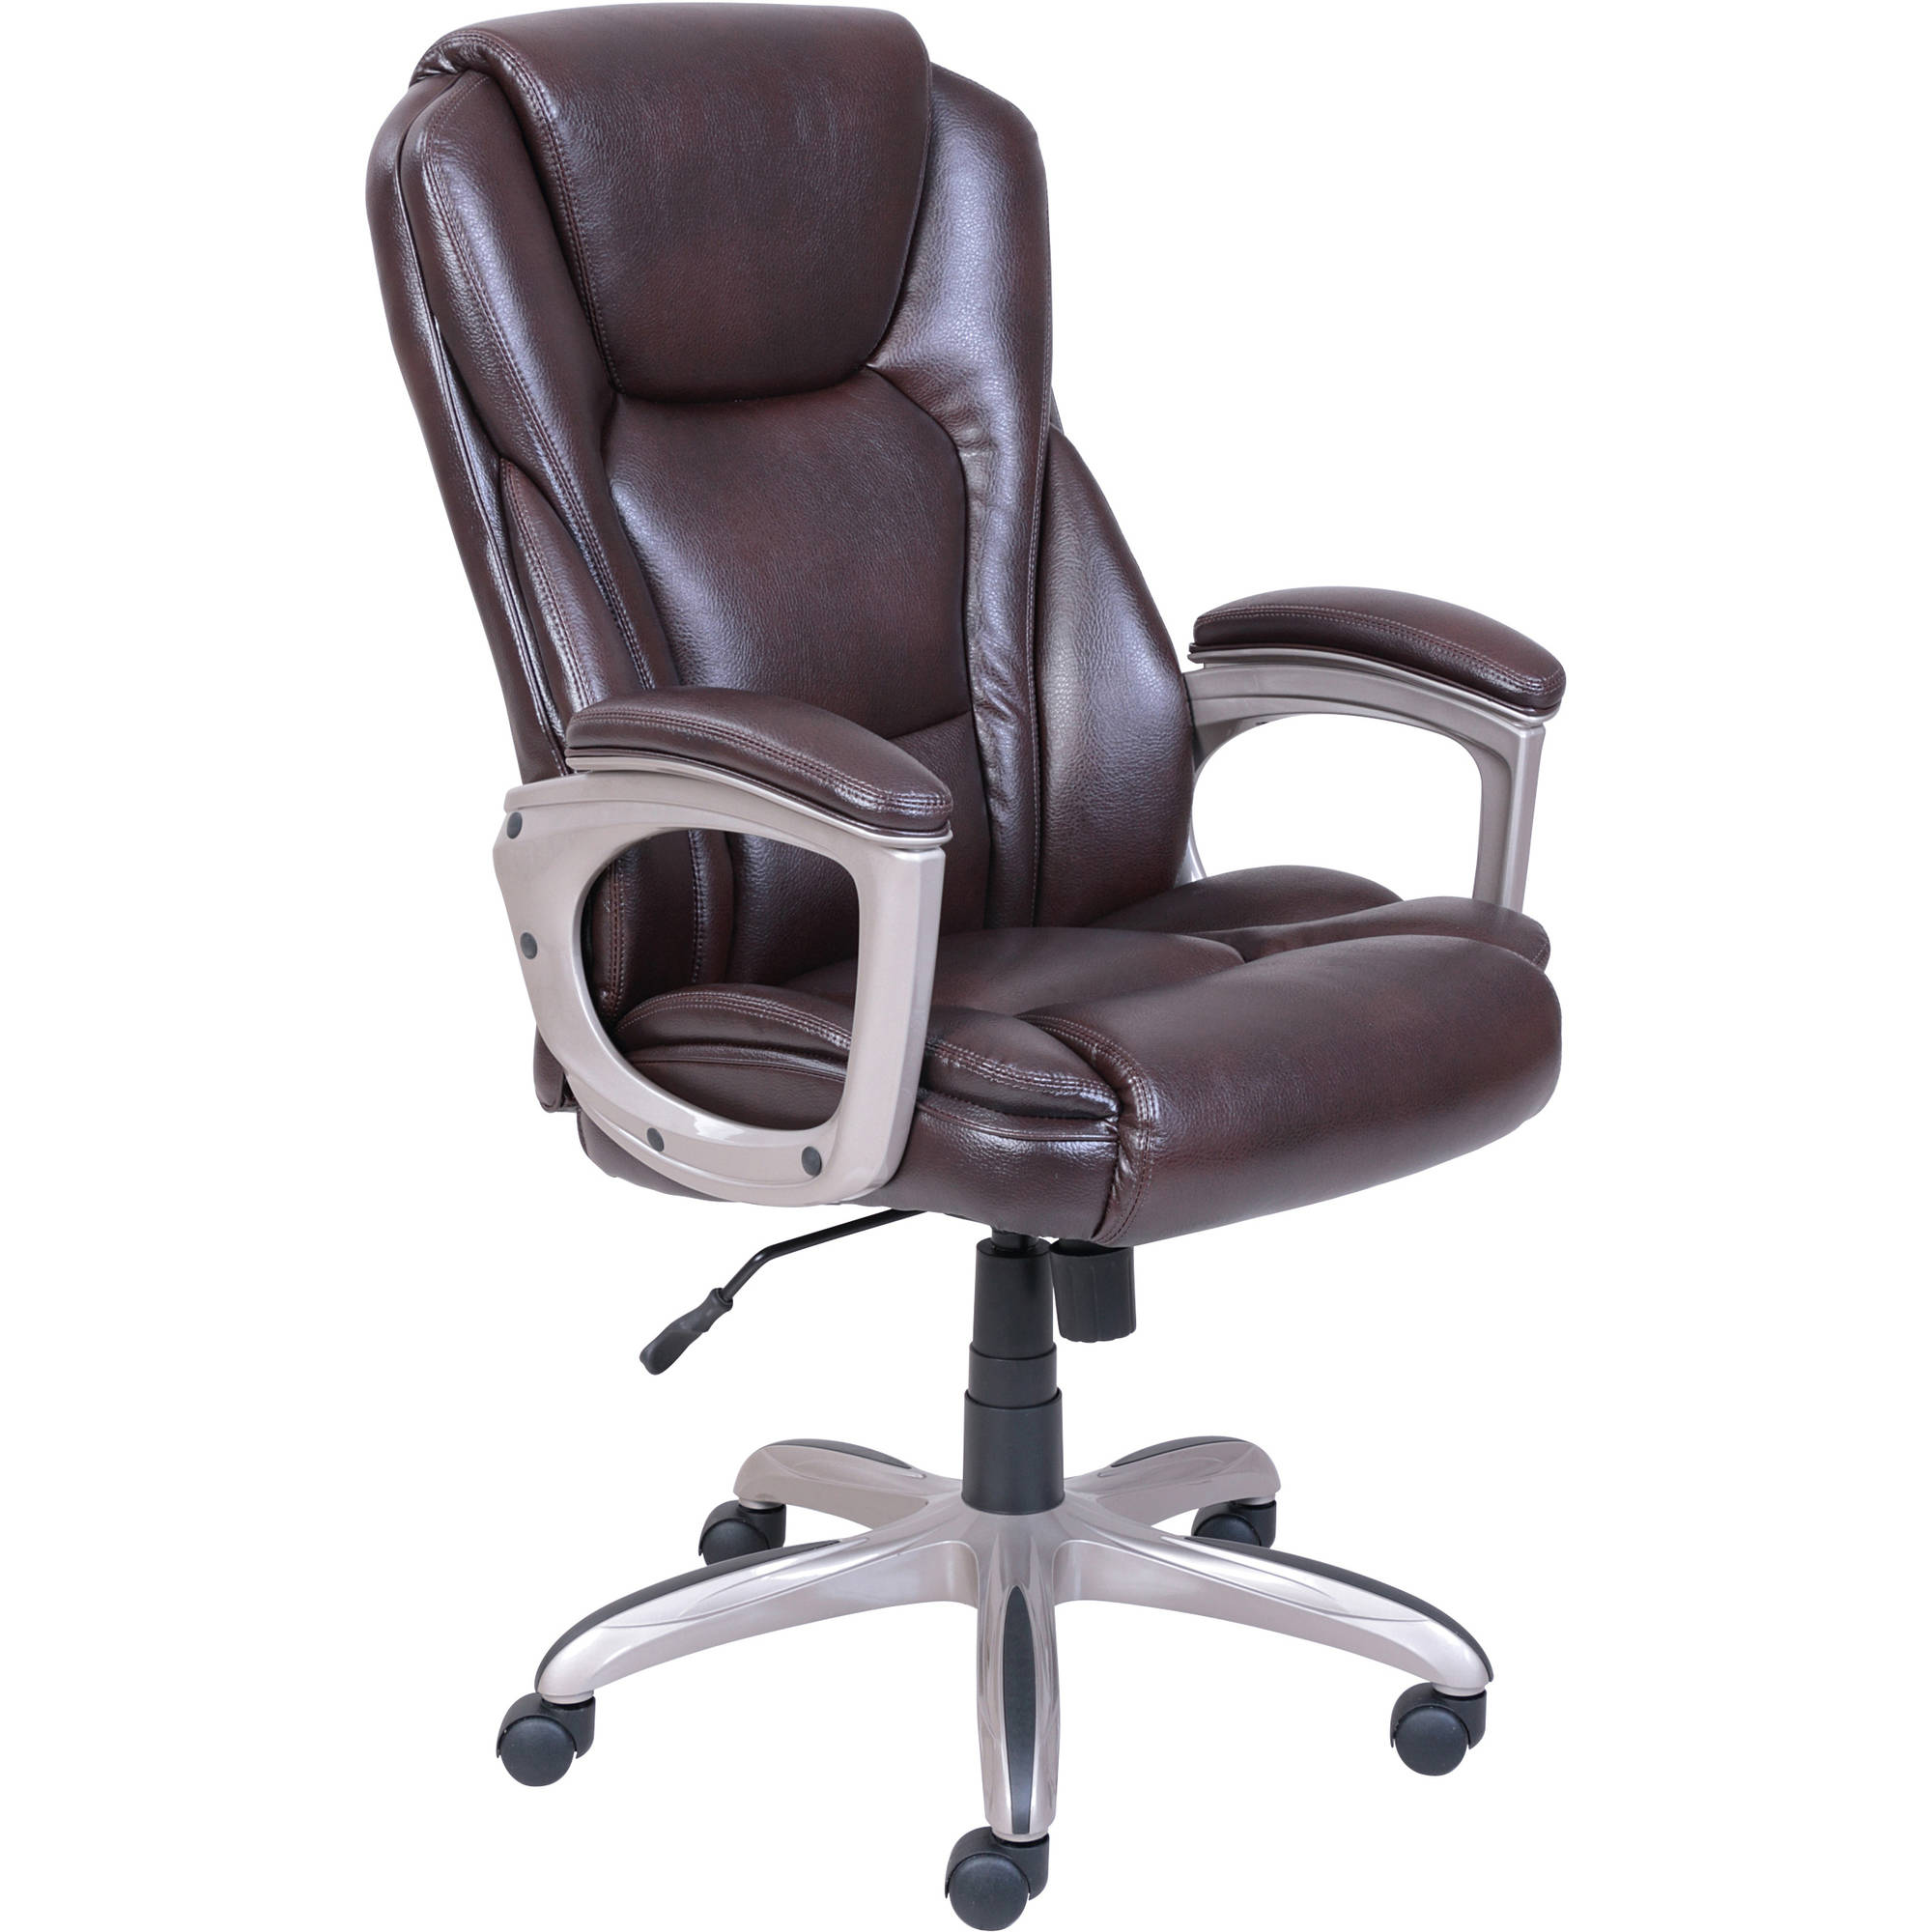 office chair images. Serta Big \u0026 Tall Commercial Office Chair With Memory Foam, Multiple Colors Images H